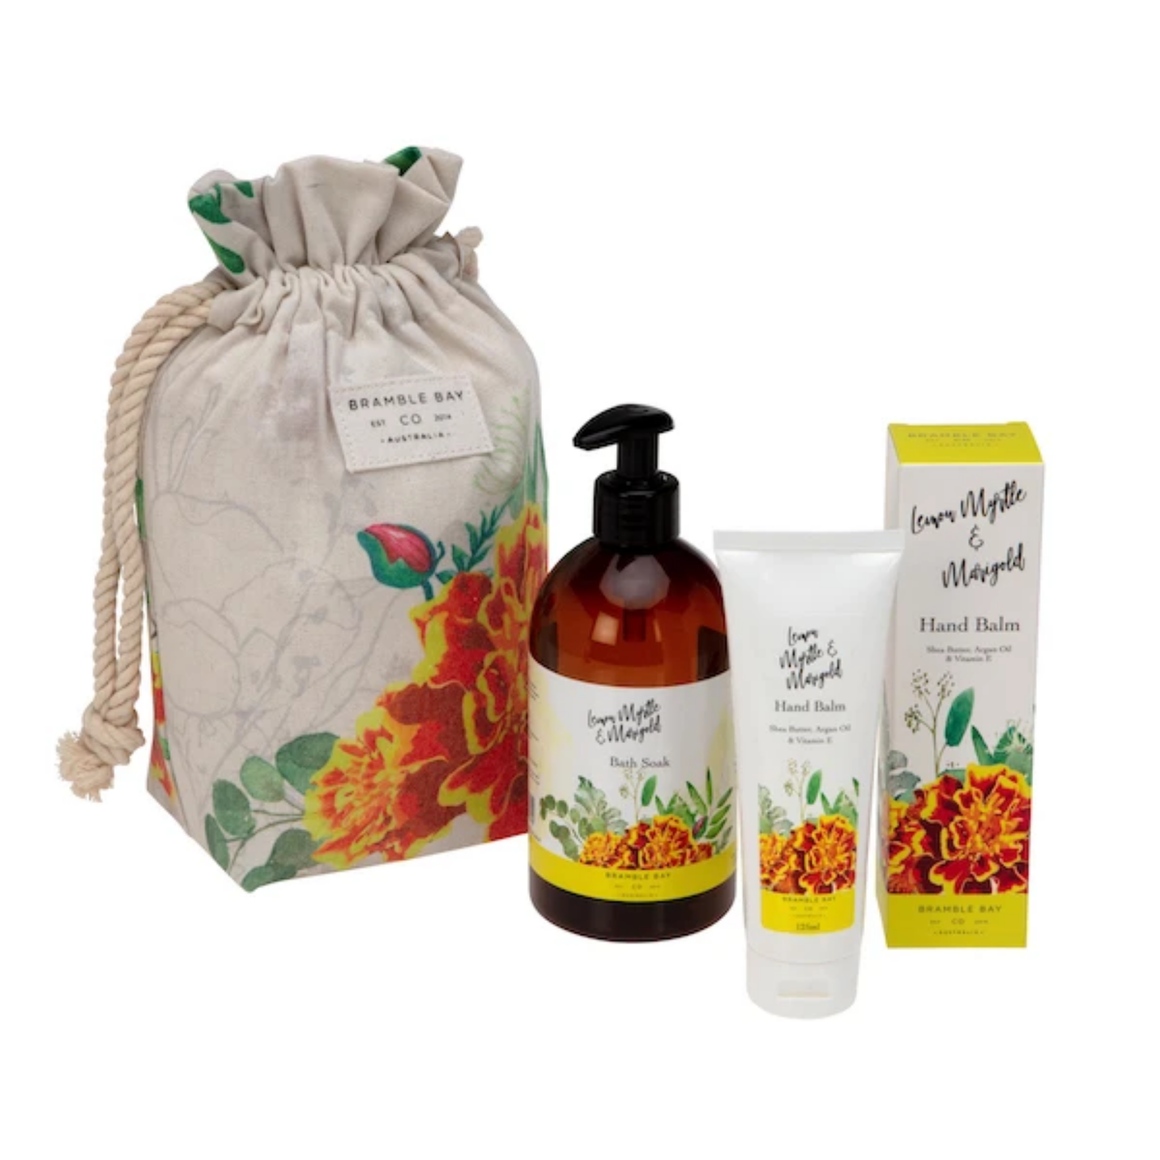 GIFT BAG LEMON MYRTLE & MARIGOLD (HAND BALM, BODY WASH & SPONGE)